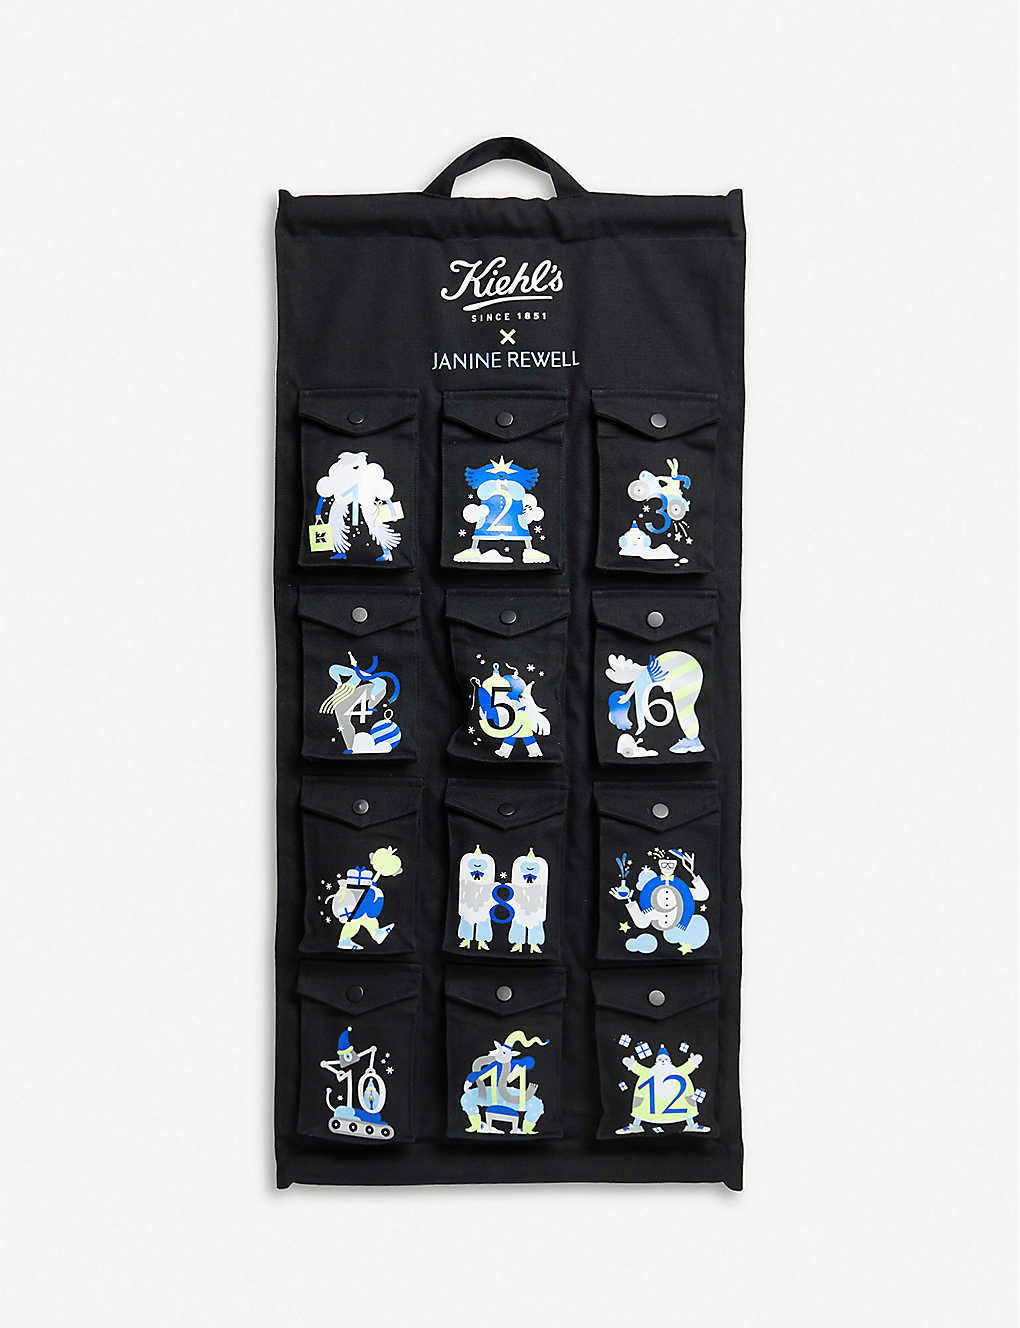 2019 Selfridges Kiehl's x Janine Rewell Advent Calendar Available Now!